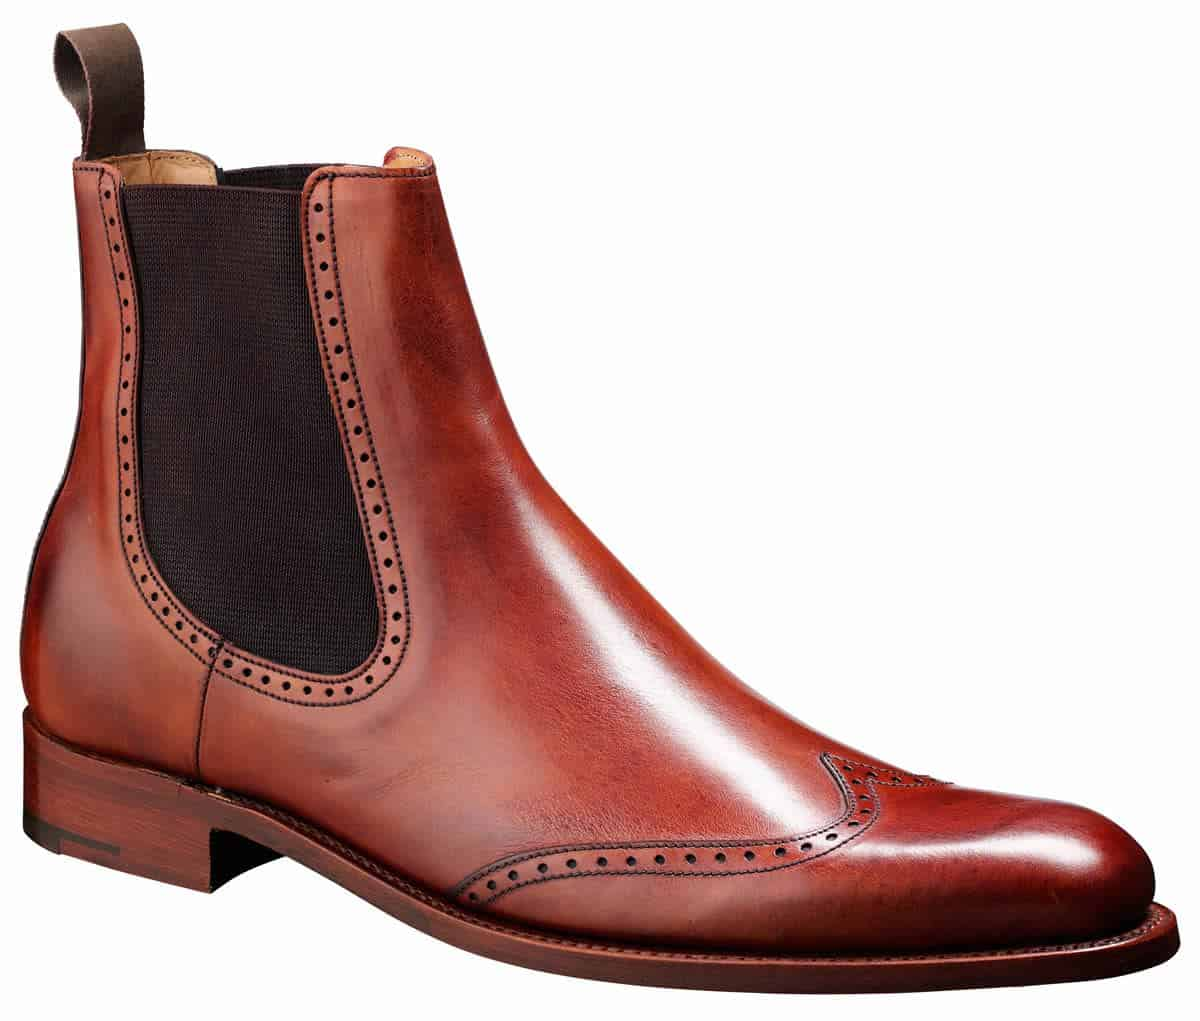 The Chelsea Boots Guide – A Staple Boot